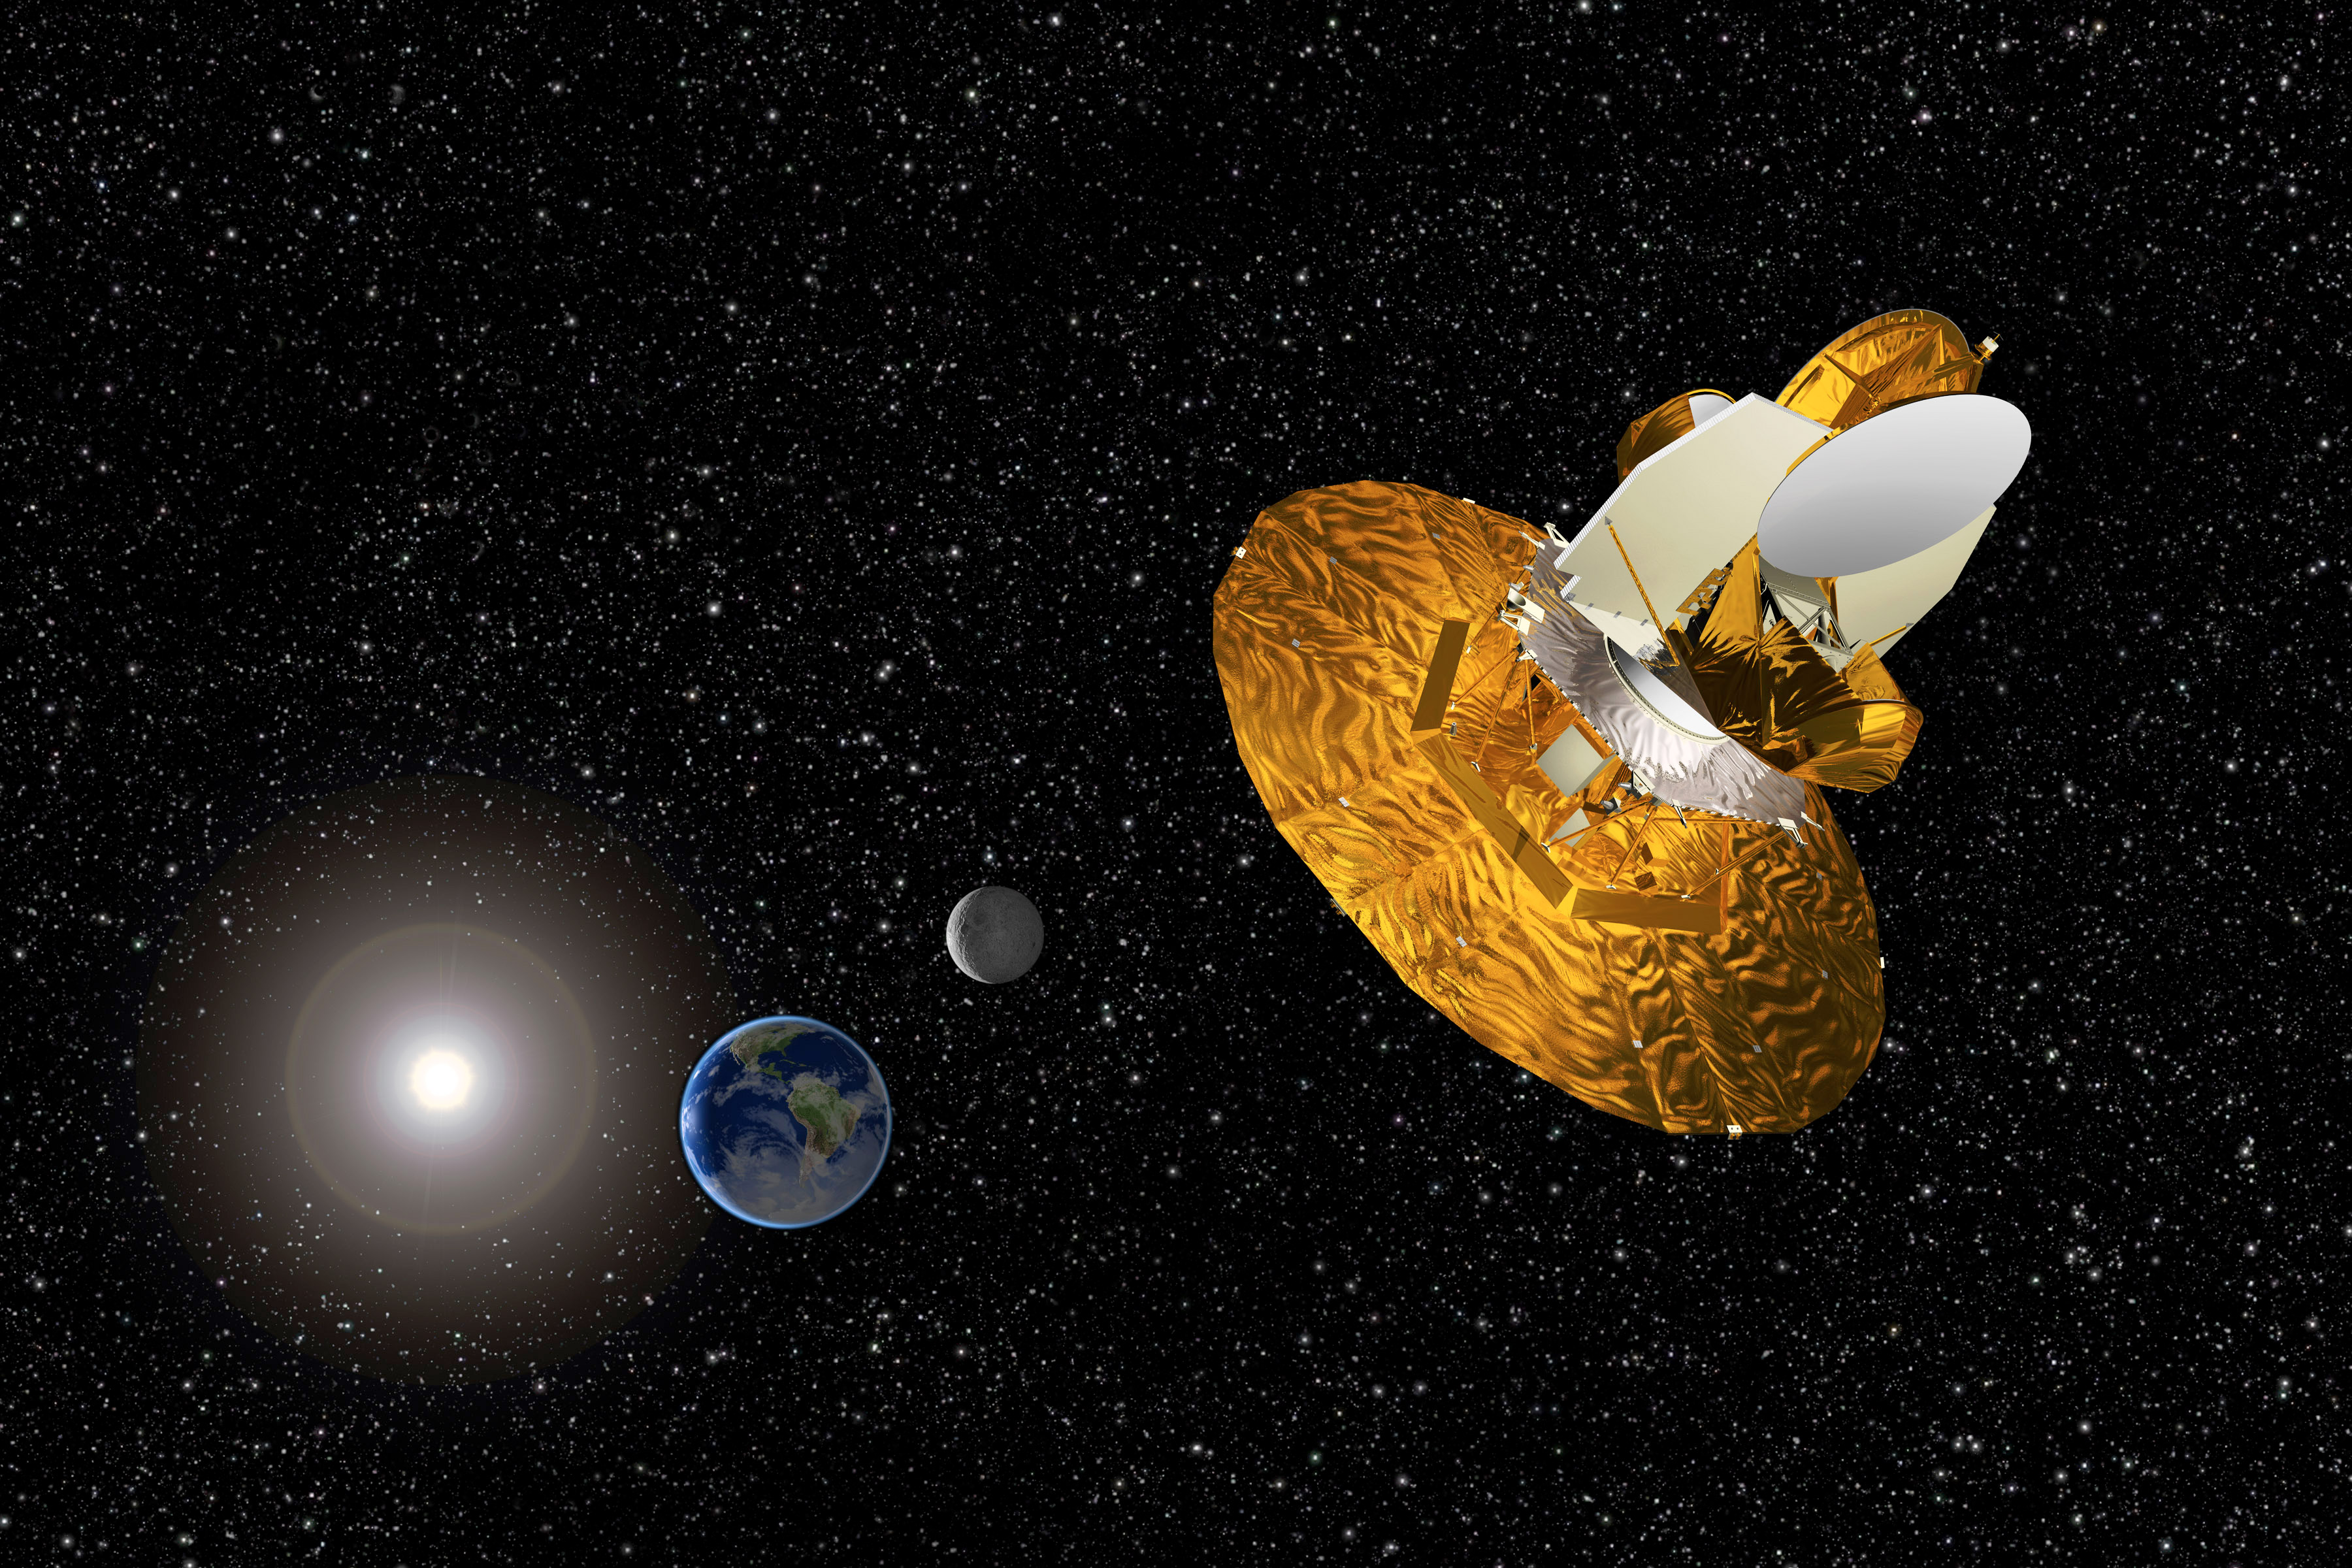 File:WMAP Leaving the Earth or Moon toward L2.jpg